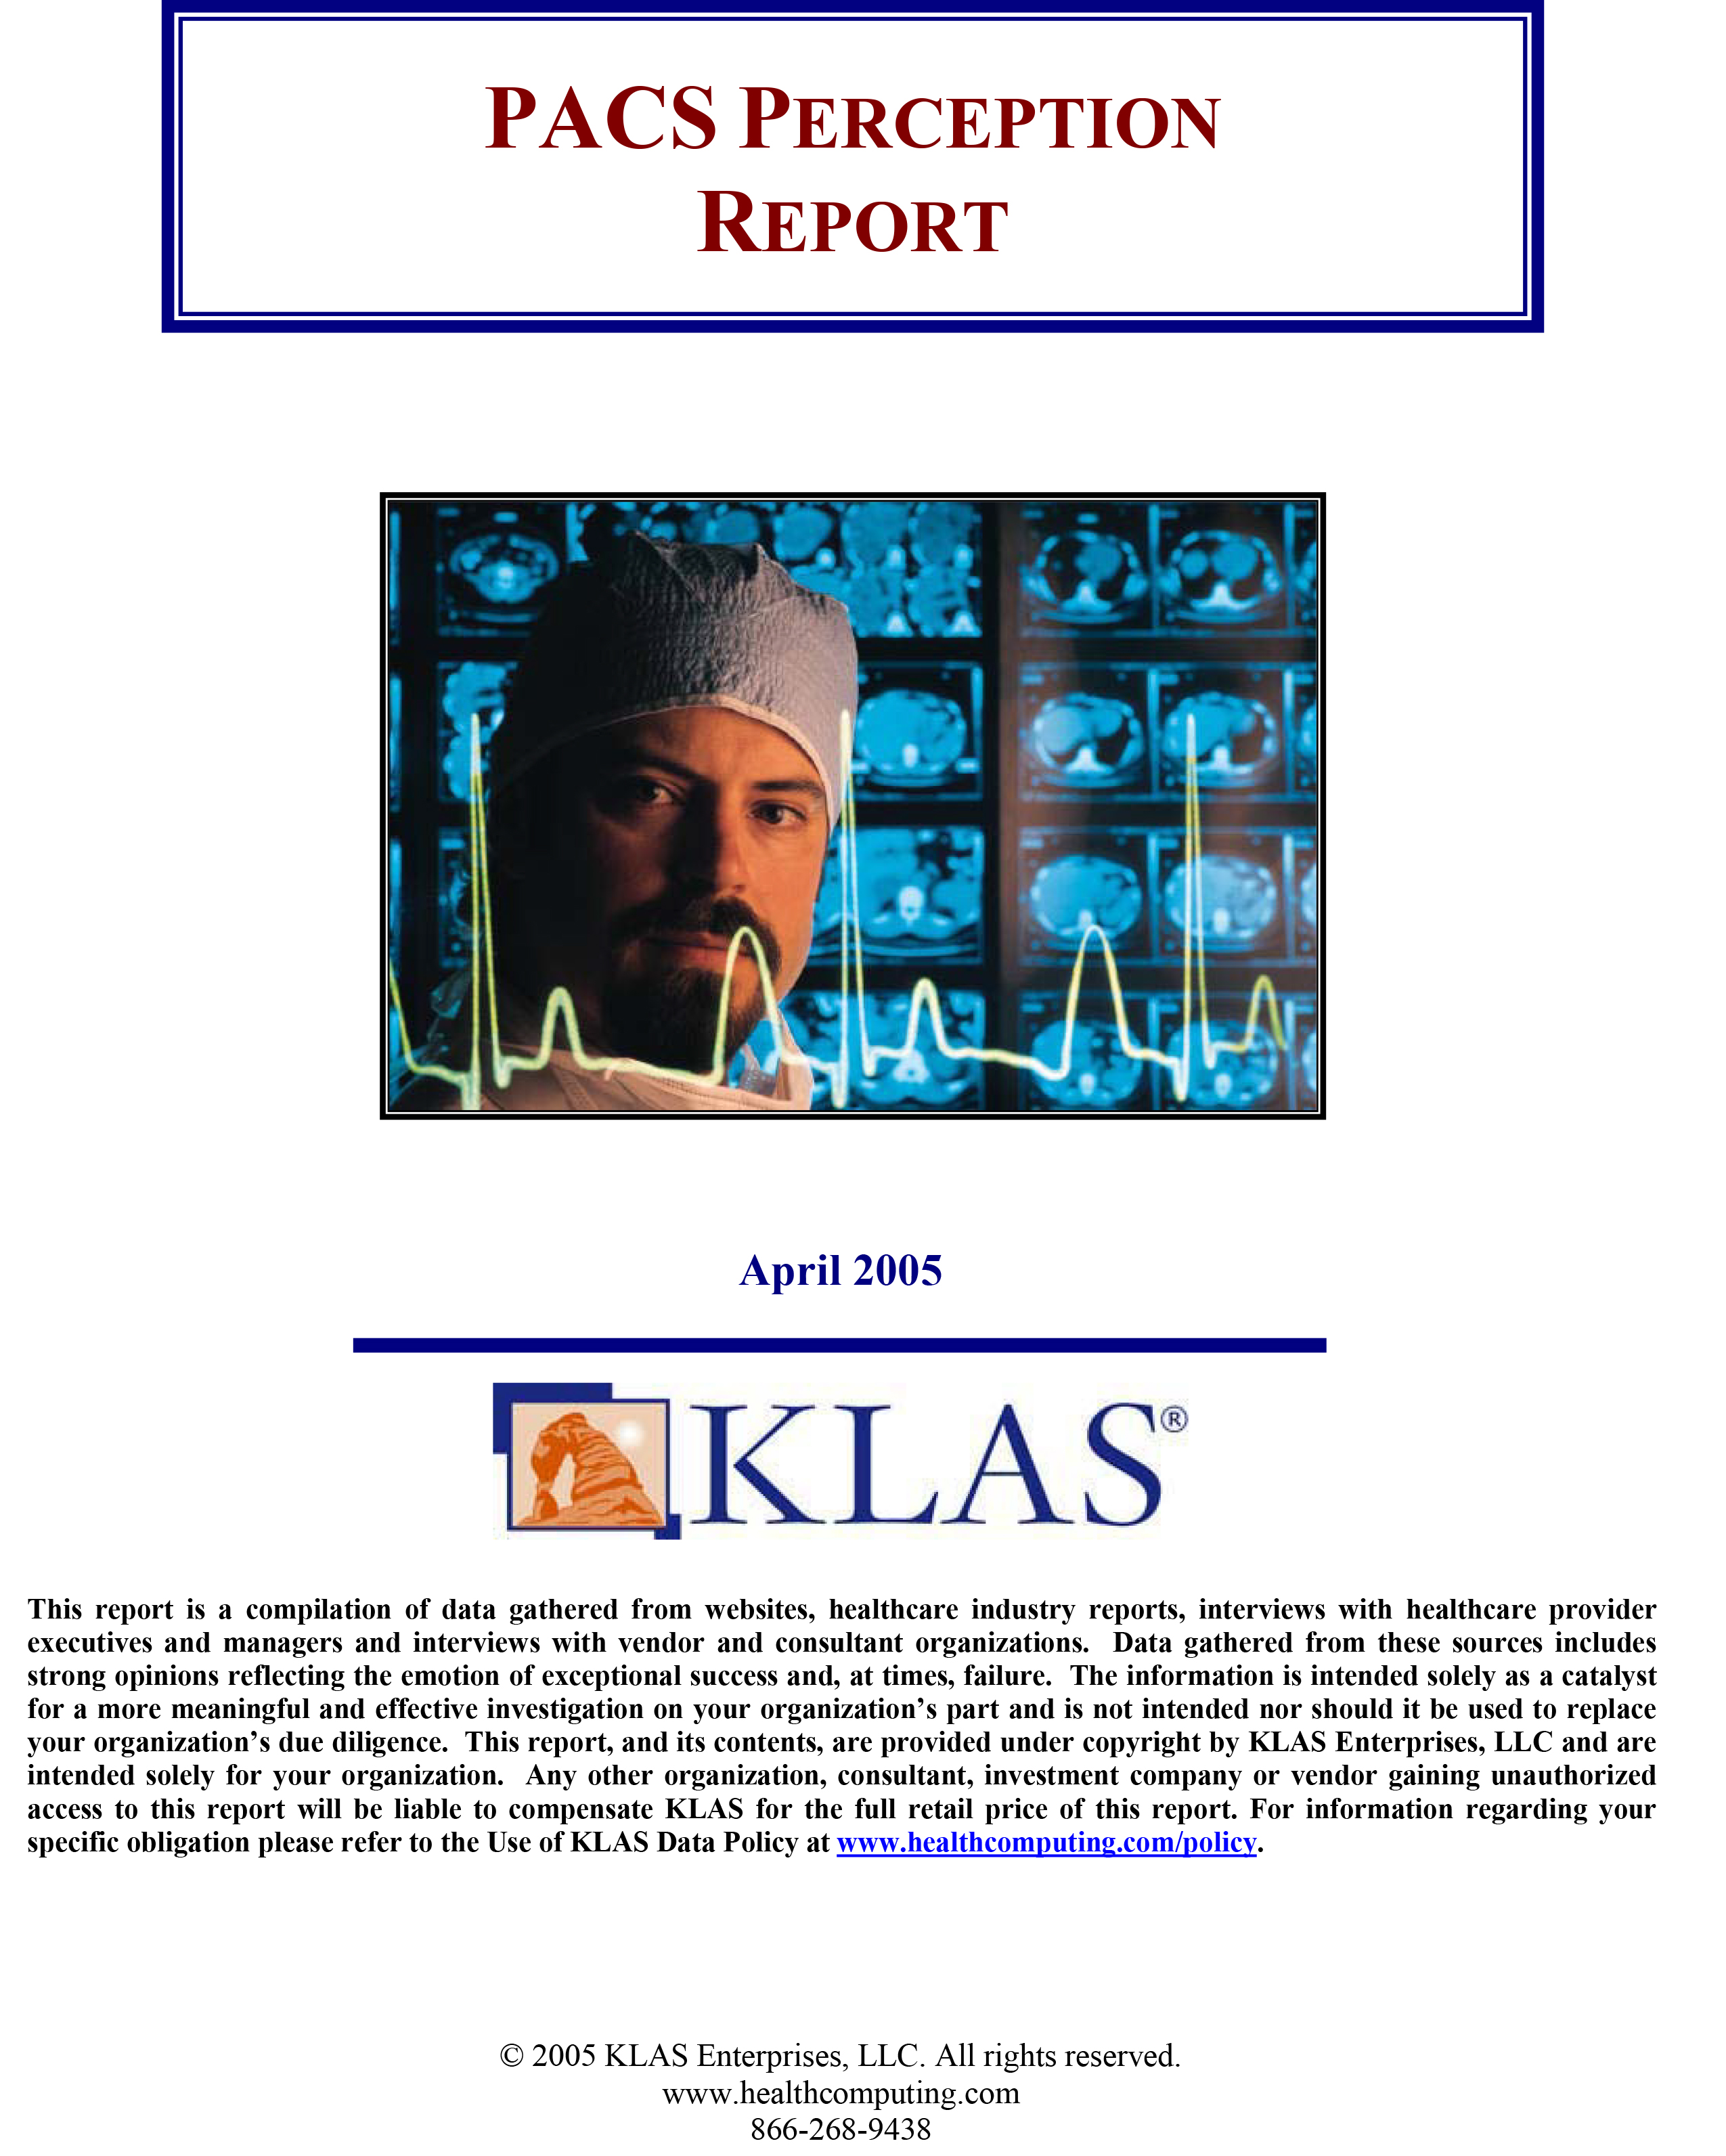 PACS Perception Report 2005